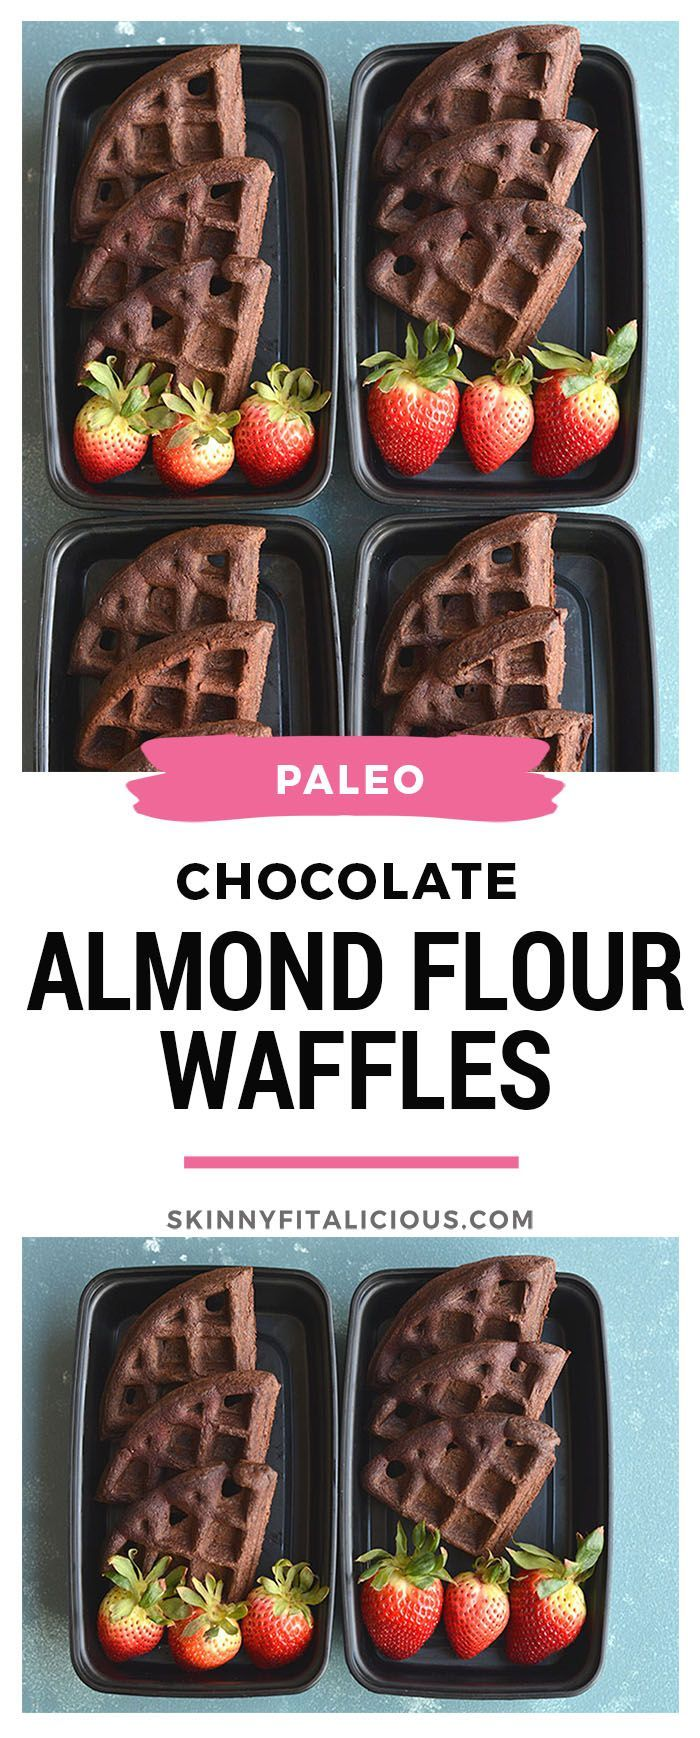 Meal Prep Chocolate Almond Flour Waffles! These chocolate goodies are not only easy to make, but high in protein and healthy fat. You only need a few healthy ingredients to make these light, fluffy, dairy free and delicious waffles. Great for meal prep and freezable too! Paleo + Gluten Free + Low Calorie #paleo #waffle #lowcalorie #skinnyfitalicious